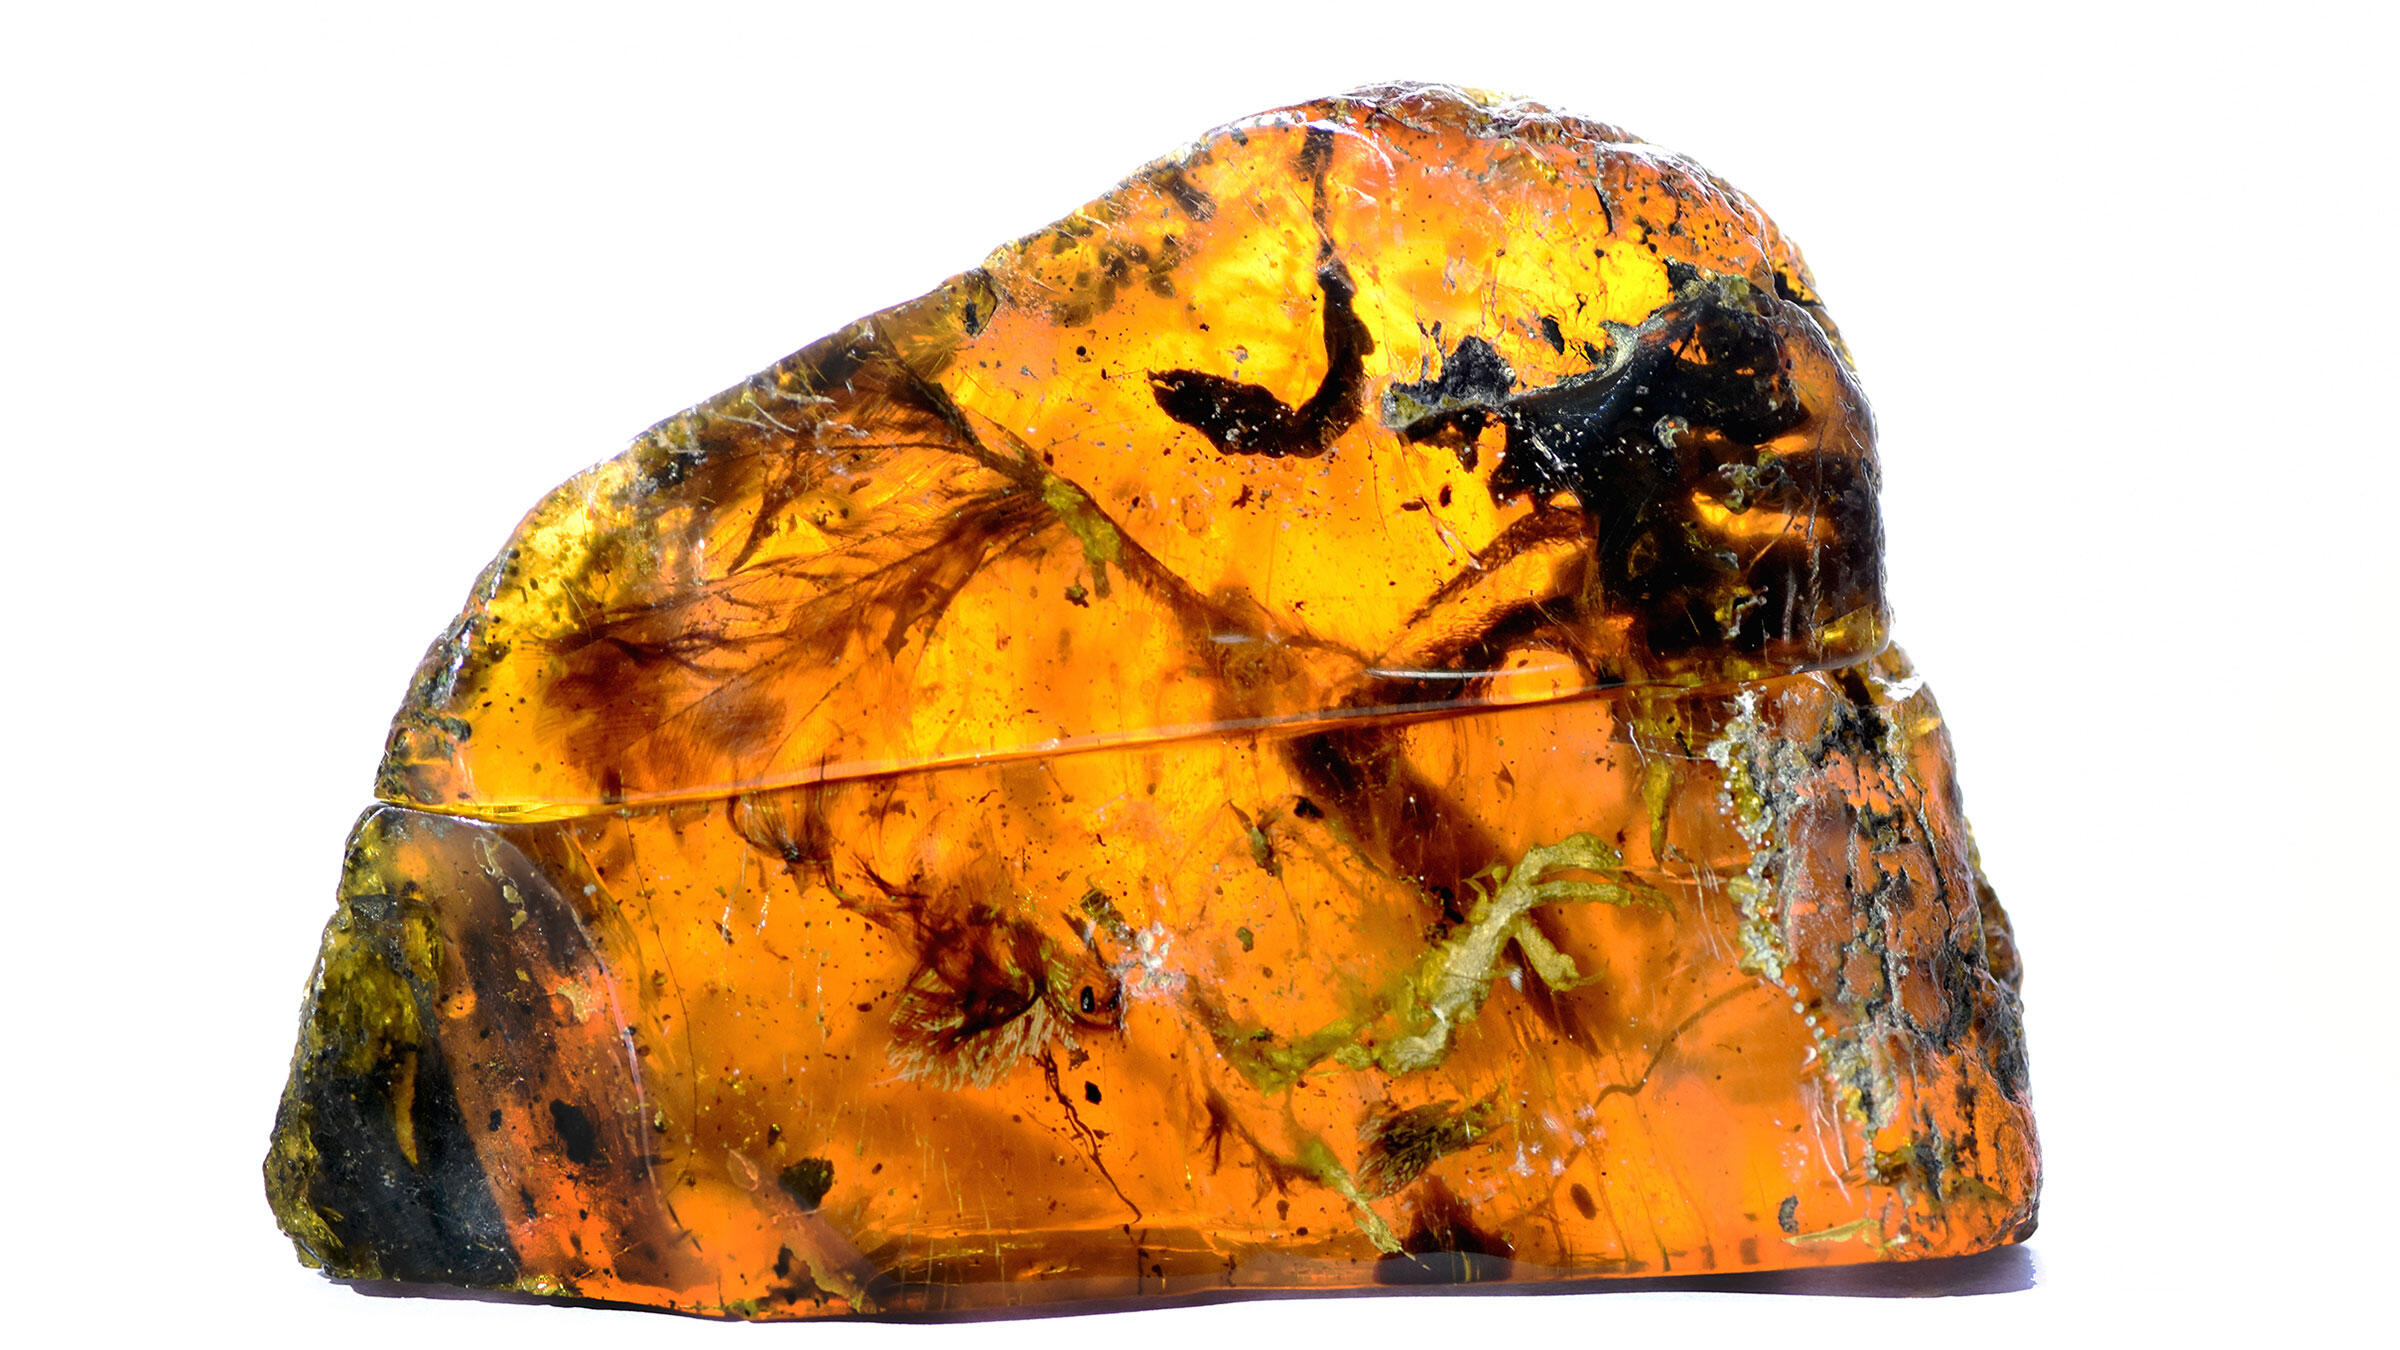 When the amber is lit from behind, the location and size of the bird's individual body parts are much easier to distinguish. Lida Xing/China University of Geosciences, Beijing